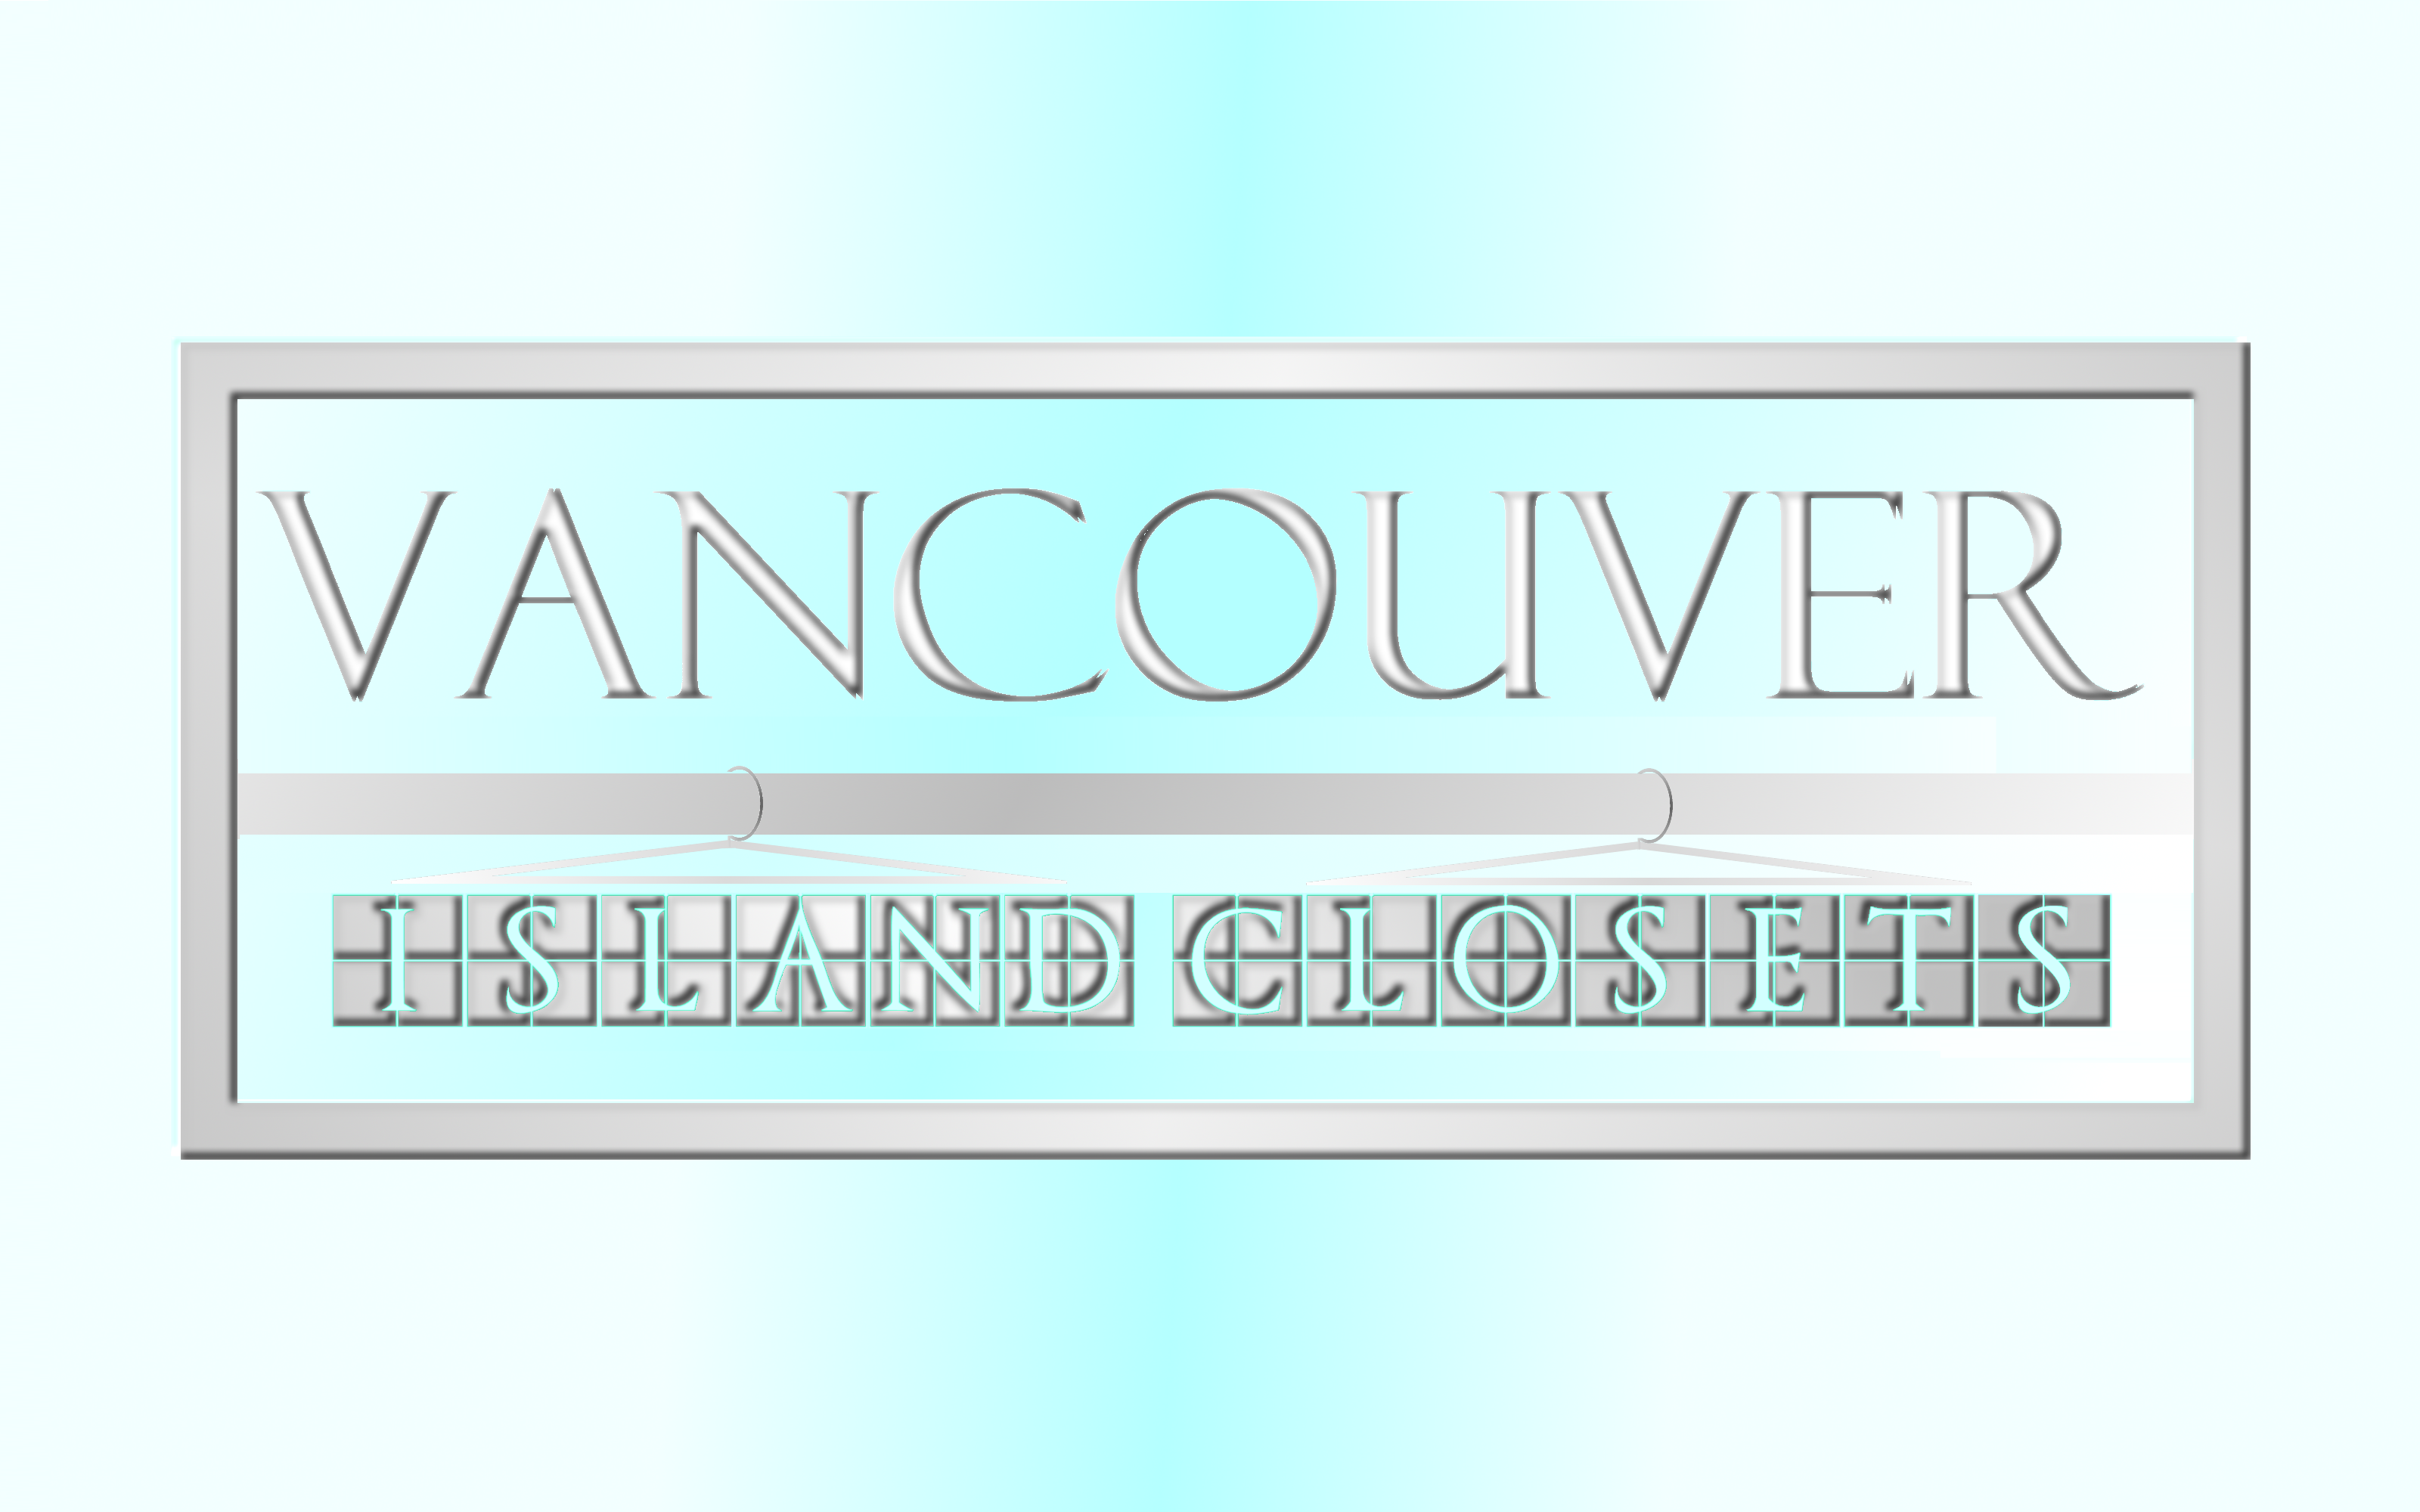 Logo Design by Roberto Bassi - Entry No. 53 in the Logo Design Contest Captivating Logo Design for Vancouver Island Closets.